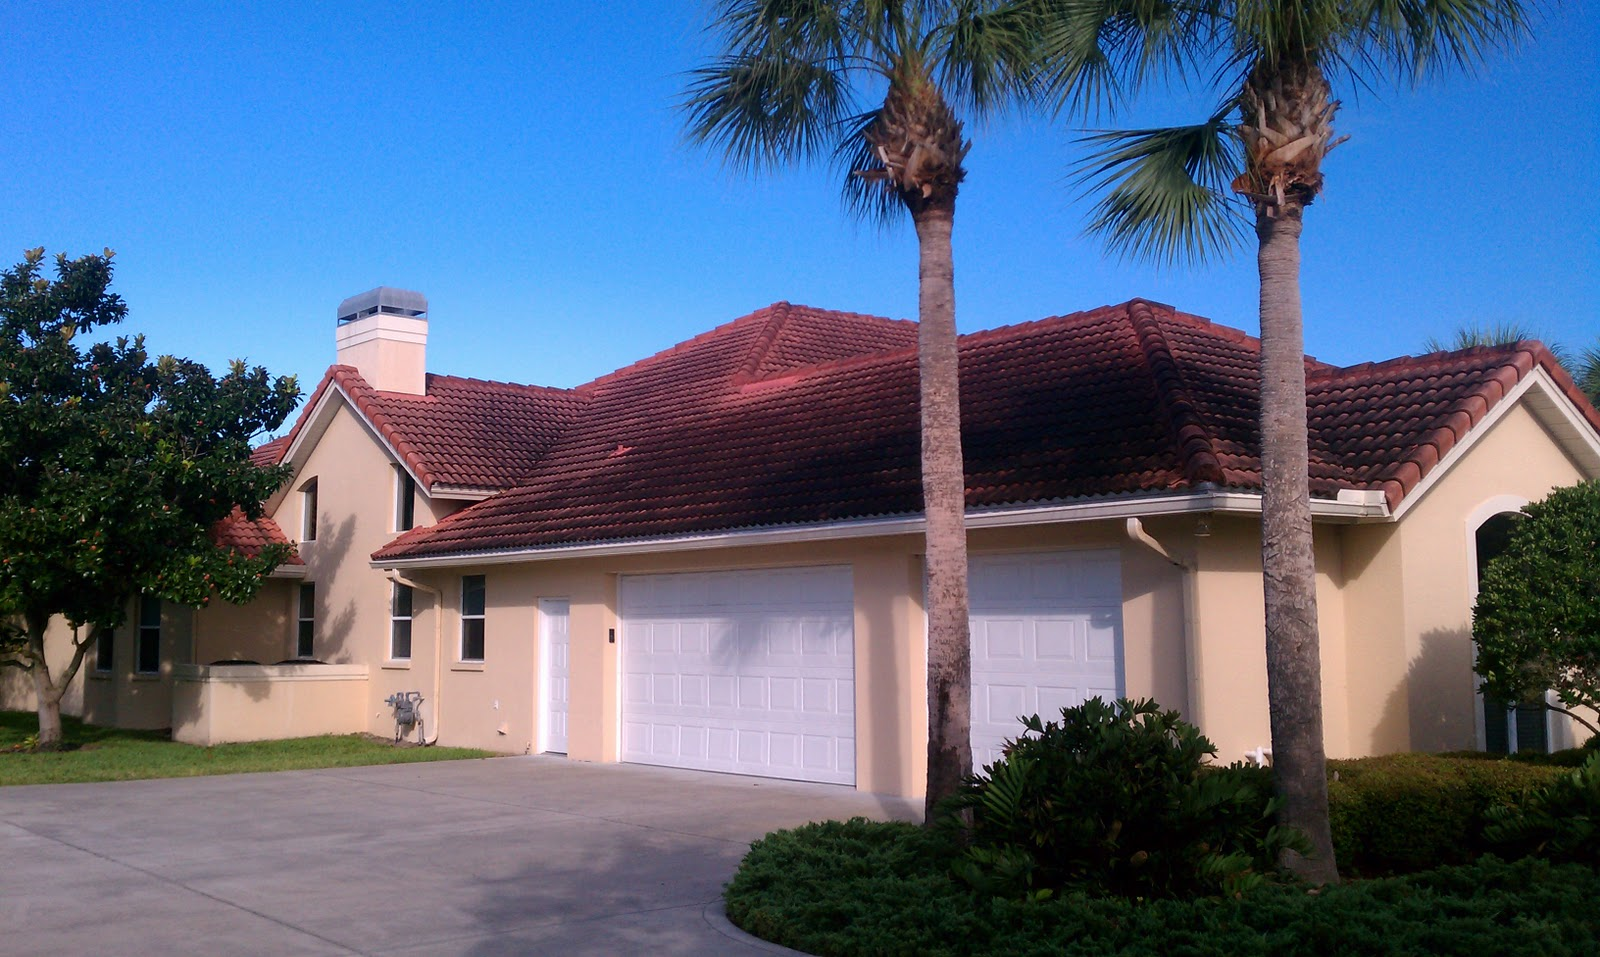 Beacon Roof Exterior Cleaning Melbourne Florida Tile